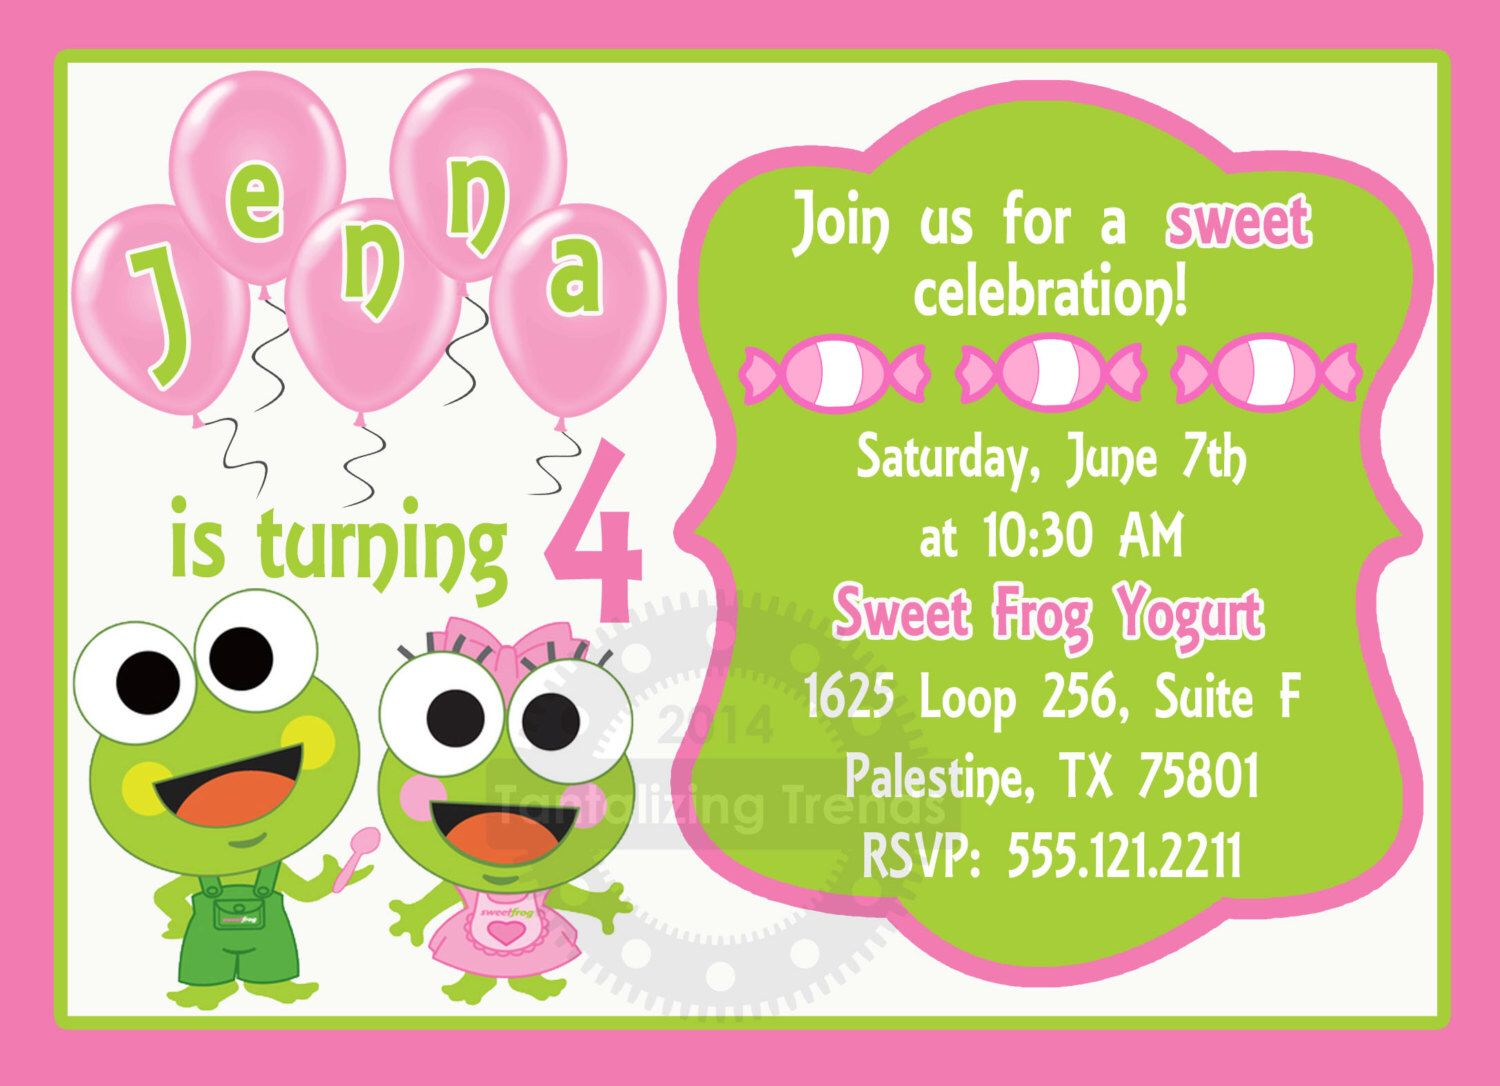 Sweet frog birthday invitation printable 5x7 digital file by sweet frog birthday invitation printable 5x7 digital file by tantalizingtrends on etsy https filmwisefo Images